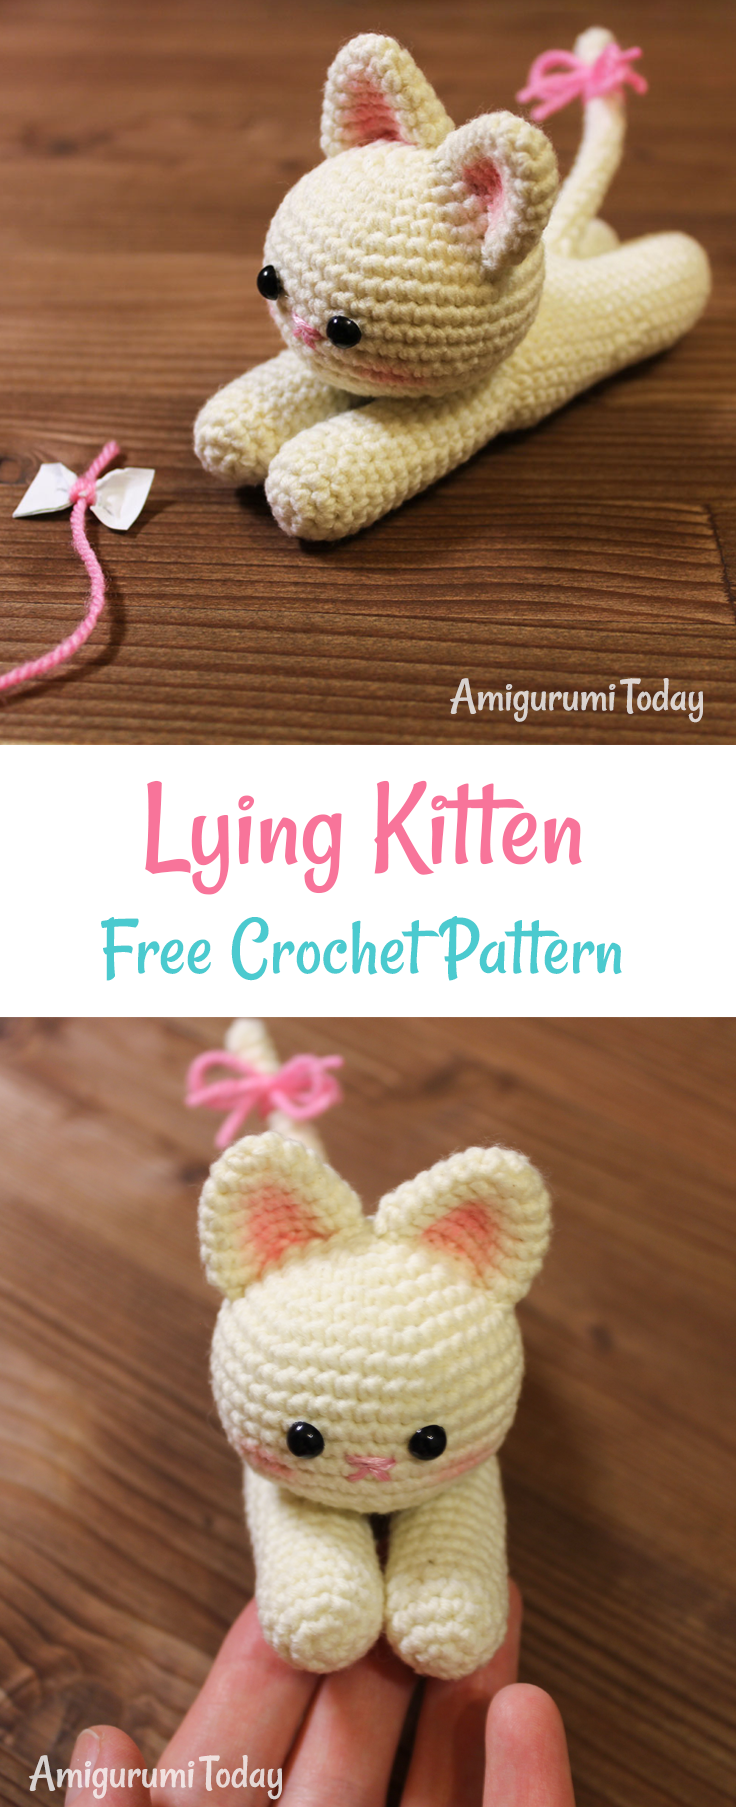 Lying Kitten Amigurumi Pattern Amigurumi Today Crochet Cat Pattern Crochet Cat Crochet Patterns Amigurumi